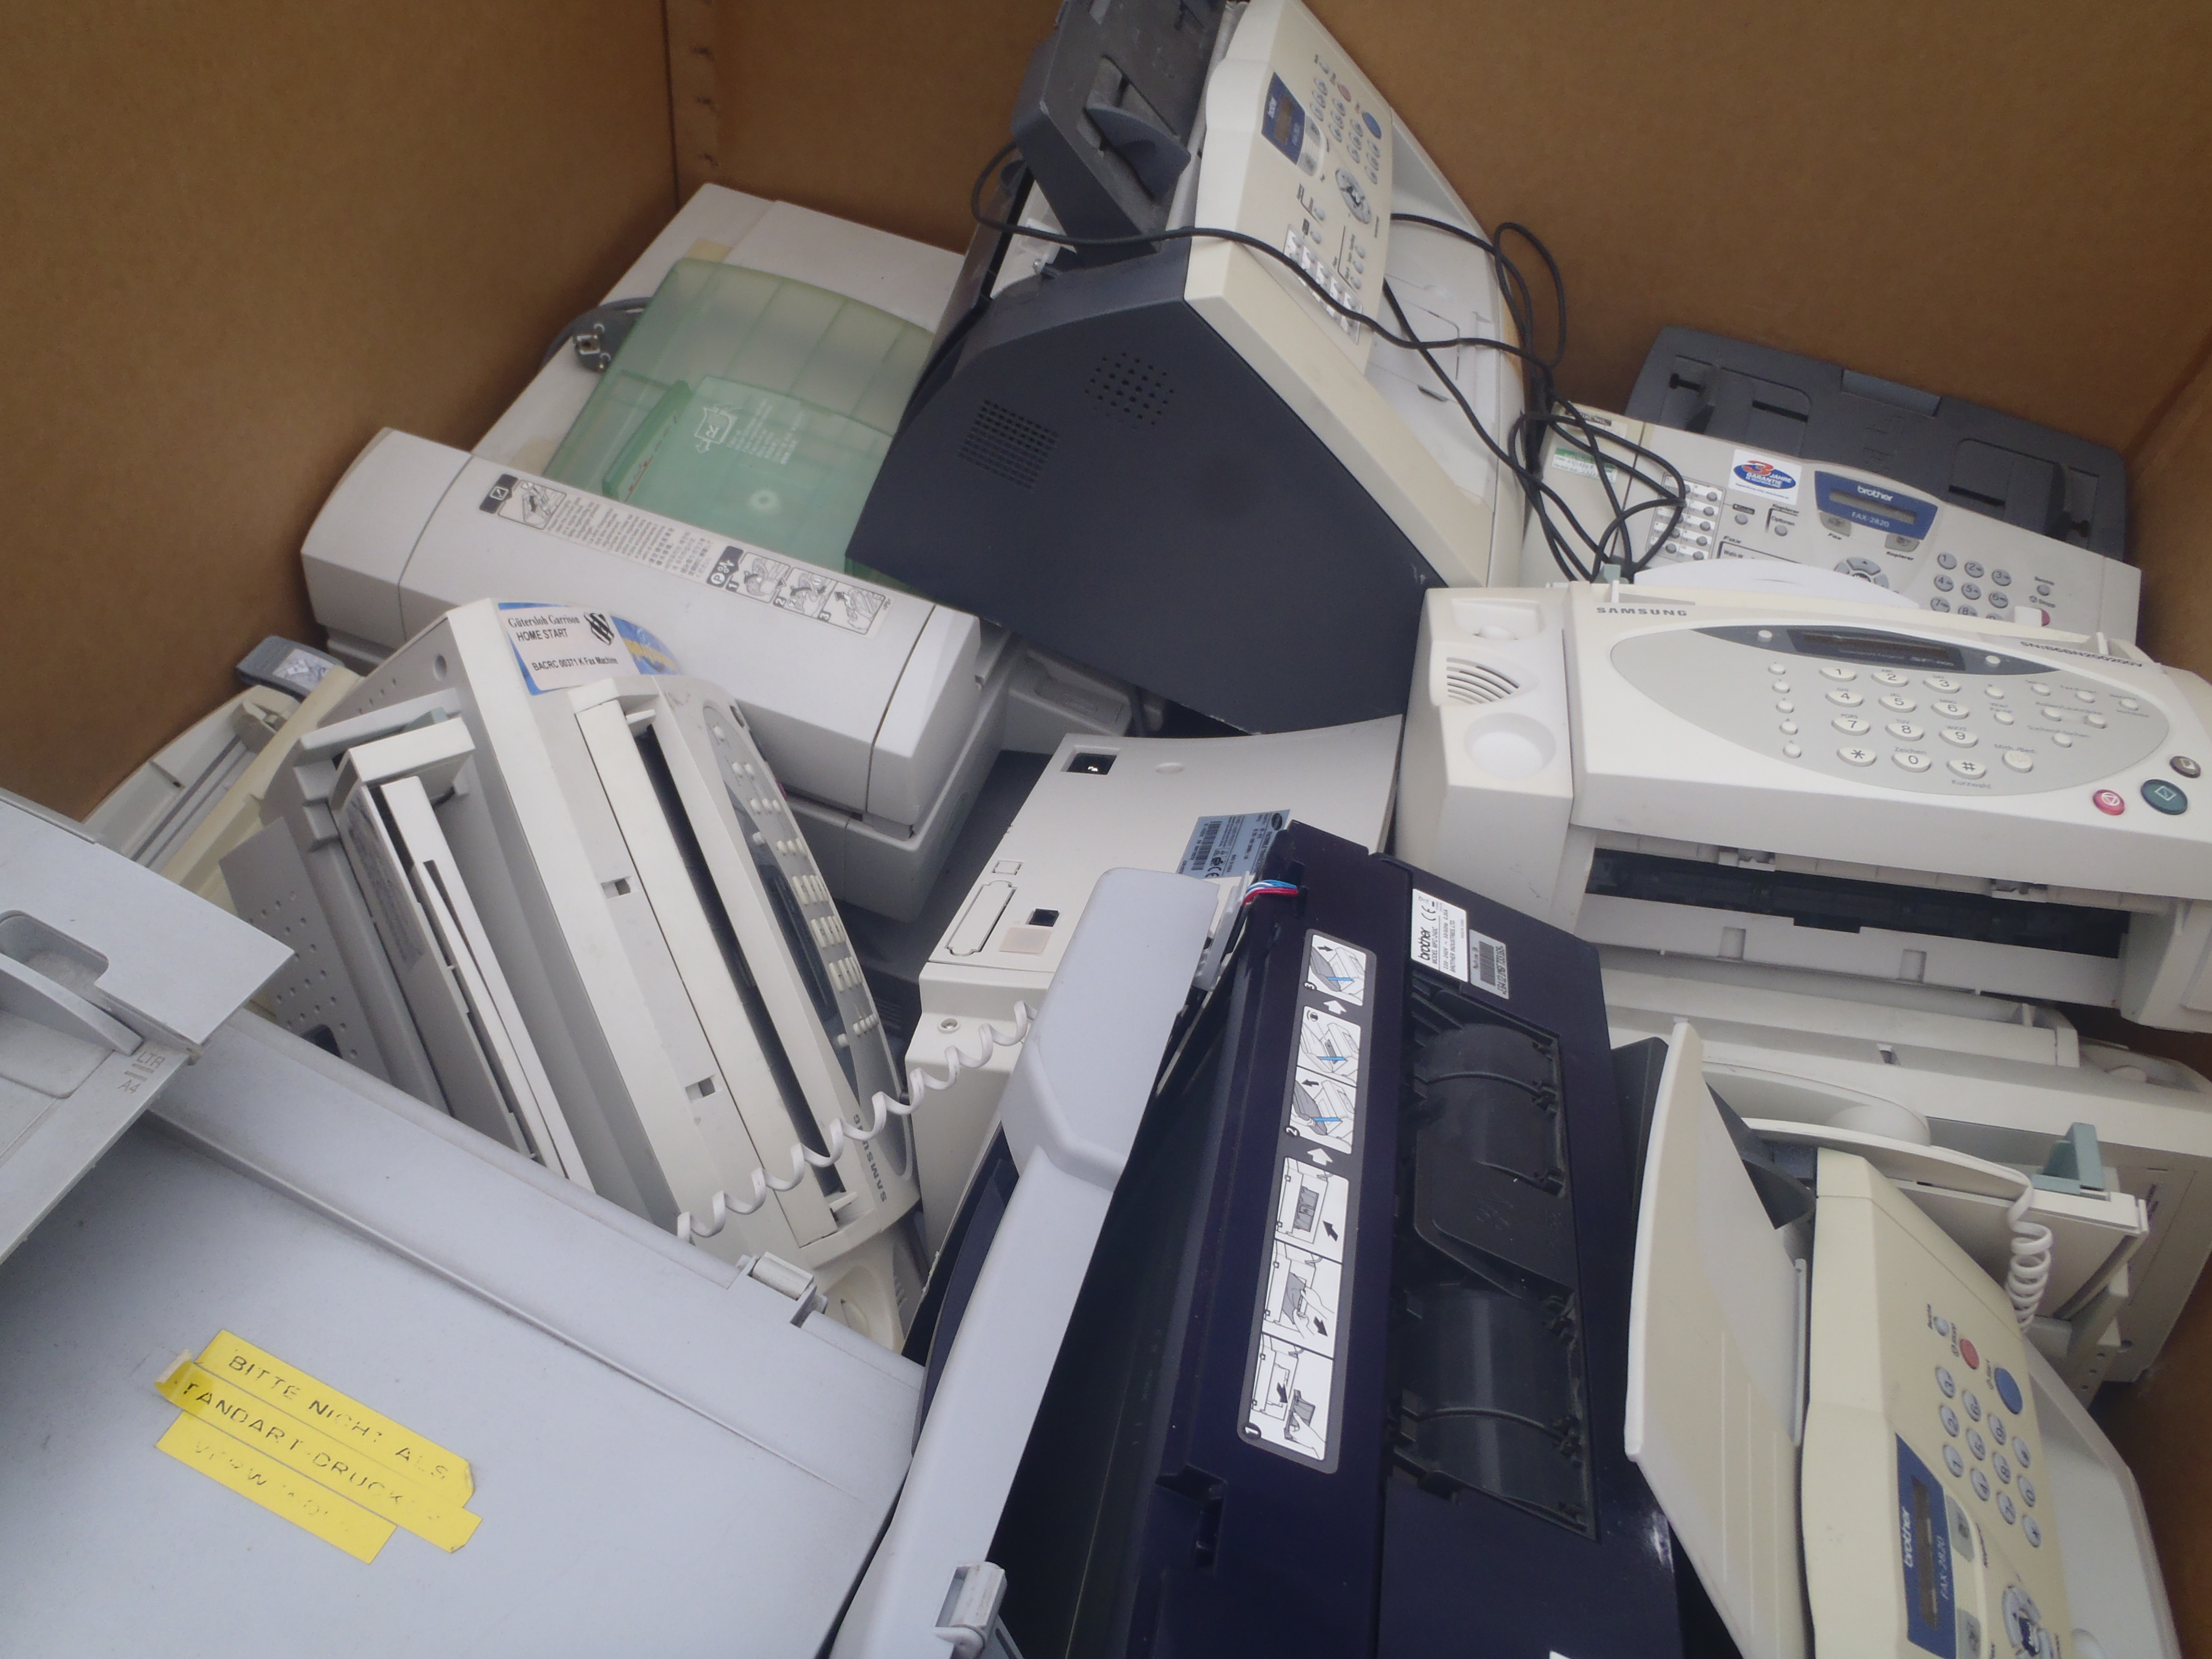 Lot 32 - Pallet of Printers & Fax Machines - Used Condition - Untested - (10992)